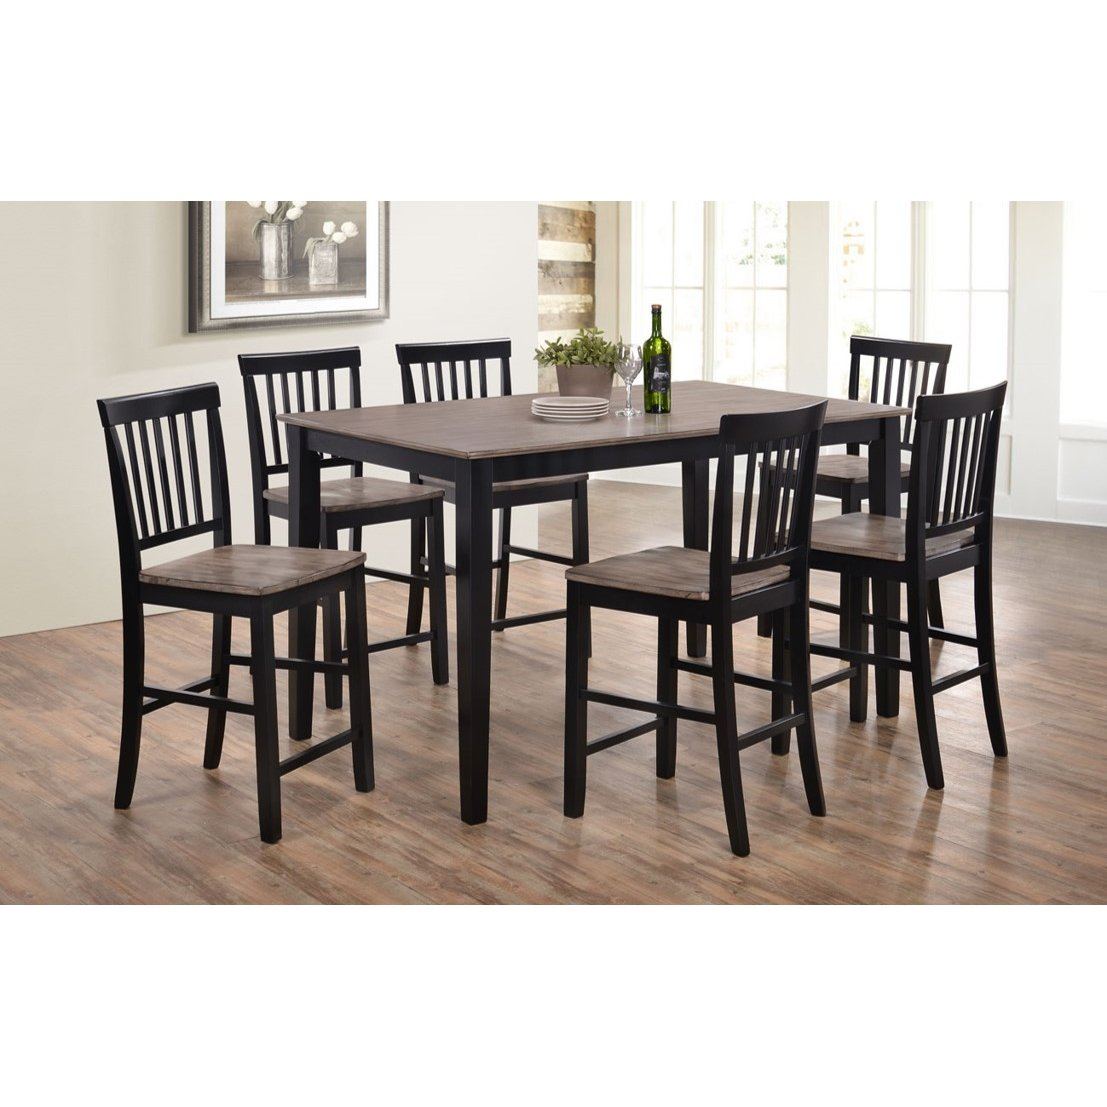 Beach Dining Room Sets: Ebony And Ash 5 Piece Counter Height Dining Set